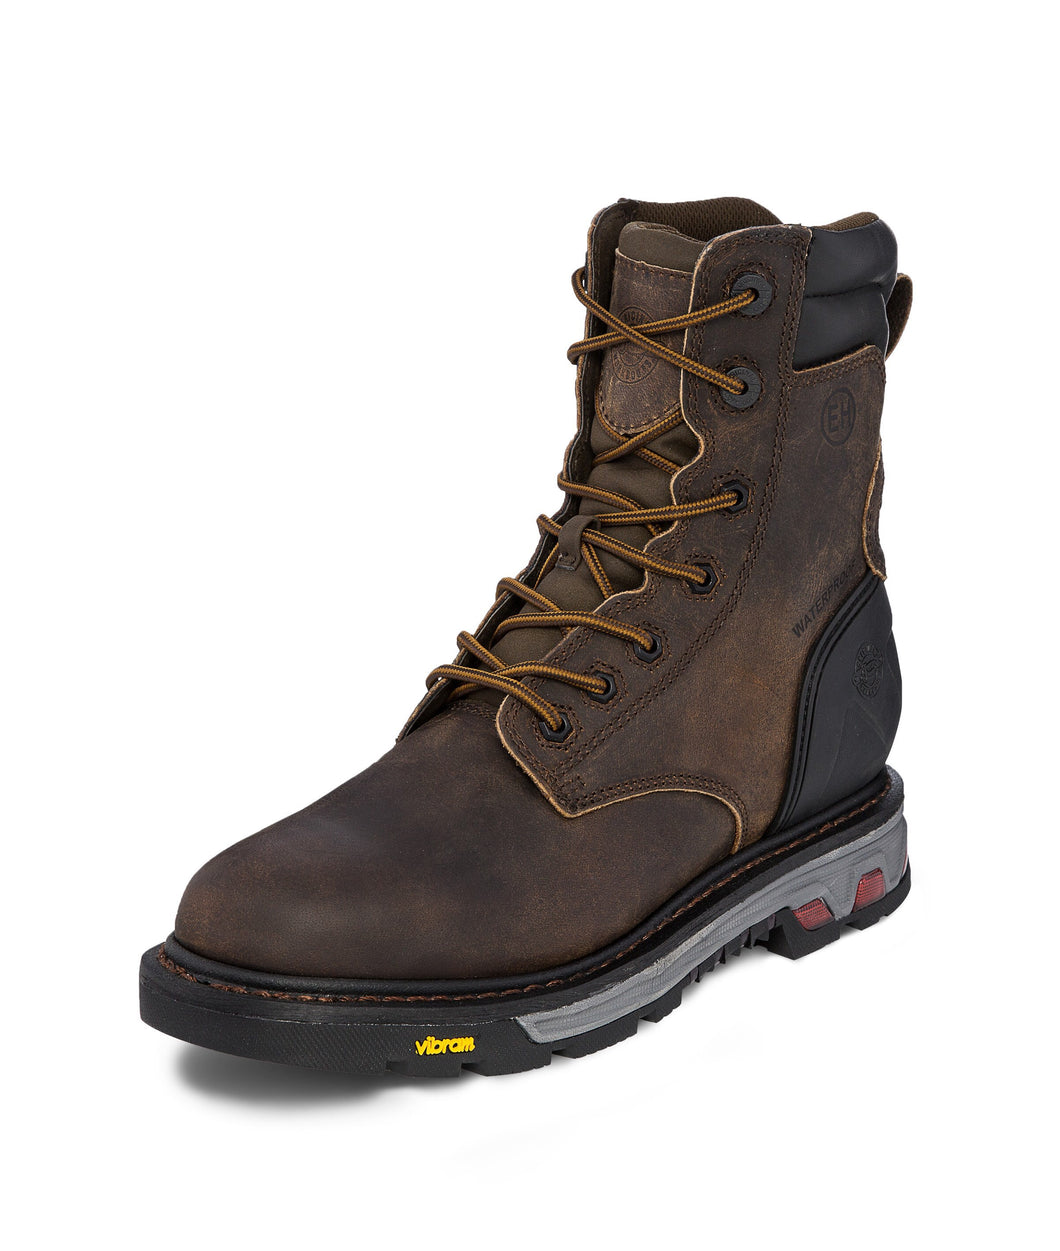 Men's Justin Laborer Brown Waterproof Work Boot